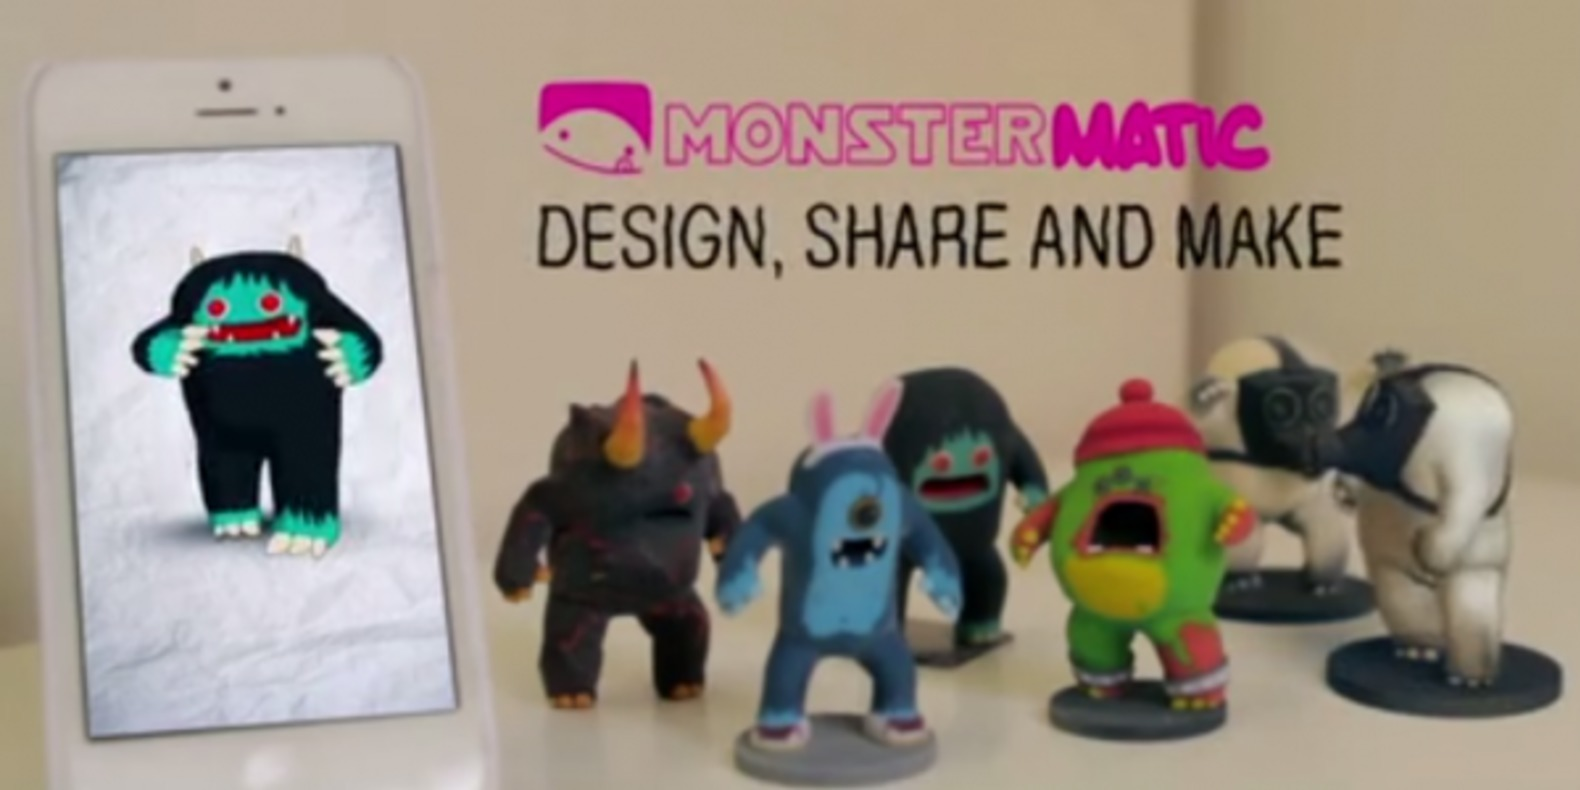 monstermatic game 3D printing printer fichier 3D object cults cults 3D kickstarter 1